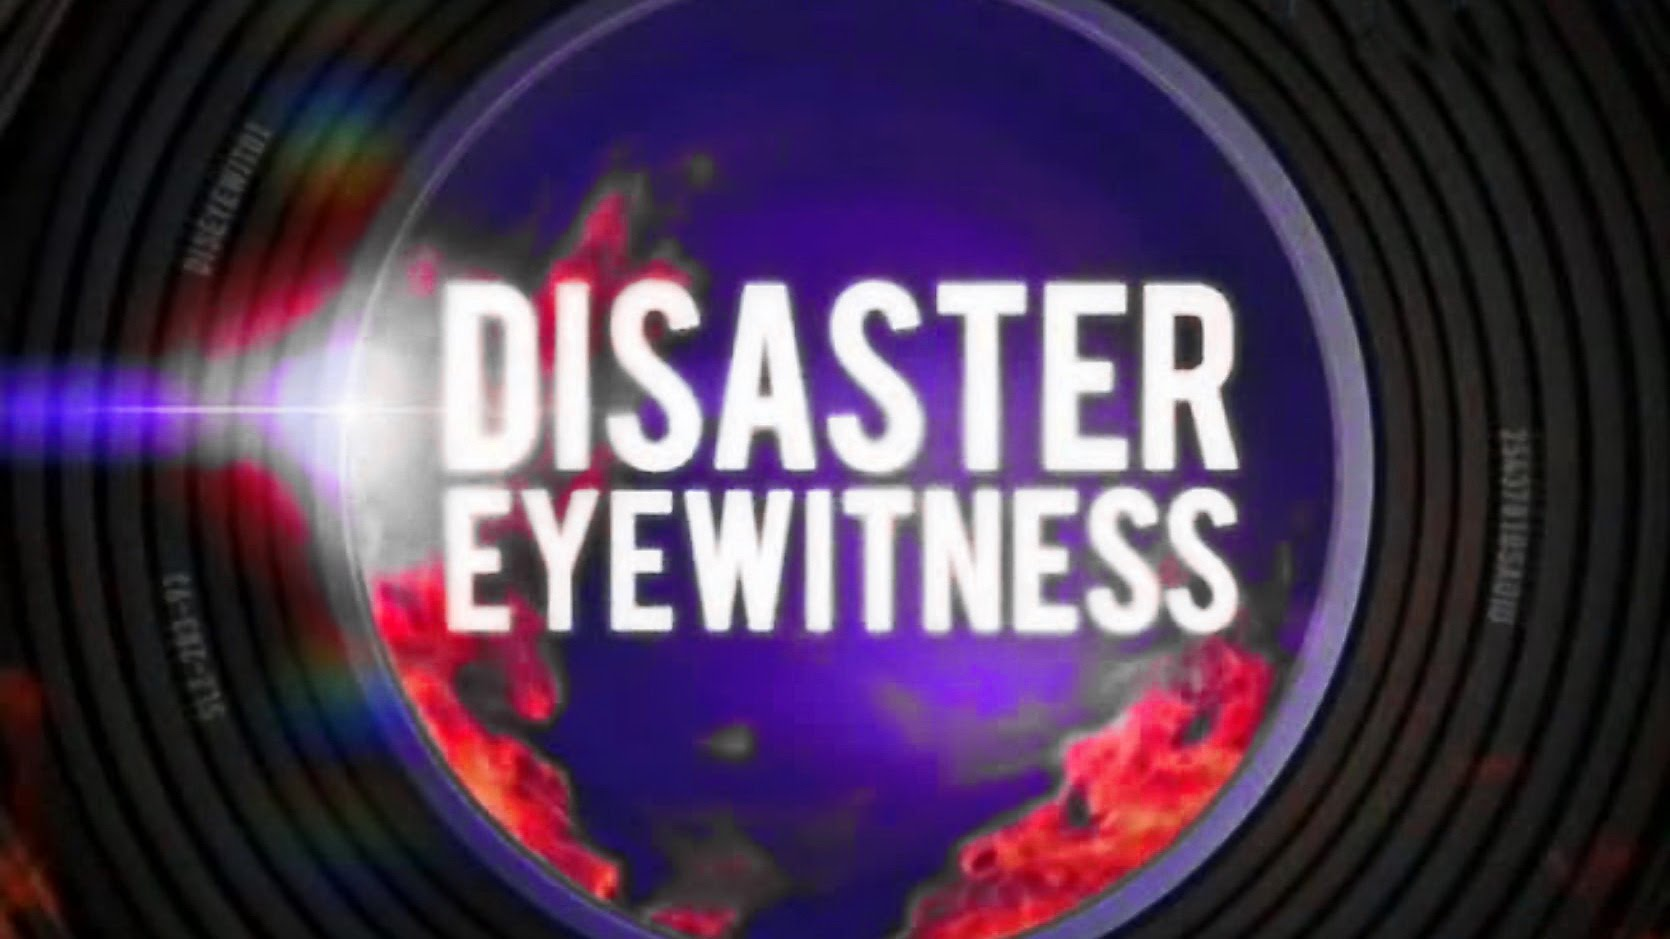 Очевидцы катастроф 6 / Disaster Eyewitness (2009)